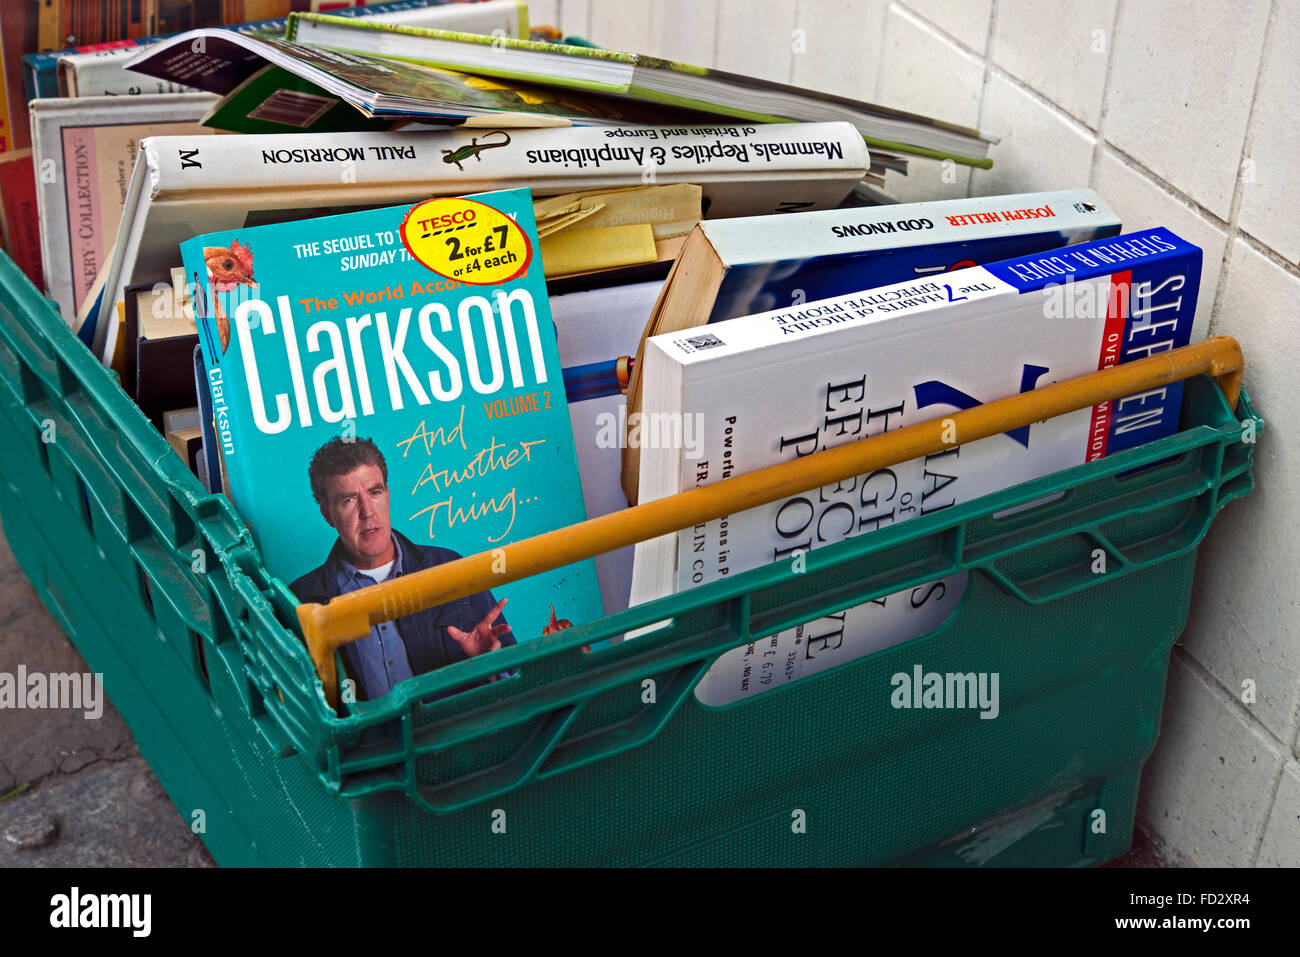 'The World According to Clarkson Volume 2' and other books in the cheap box outside a secondhand bookshop - Stock Image